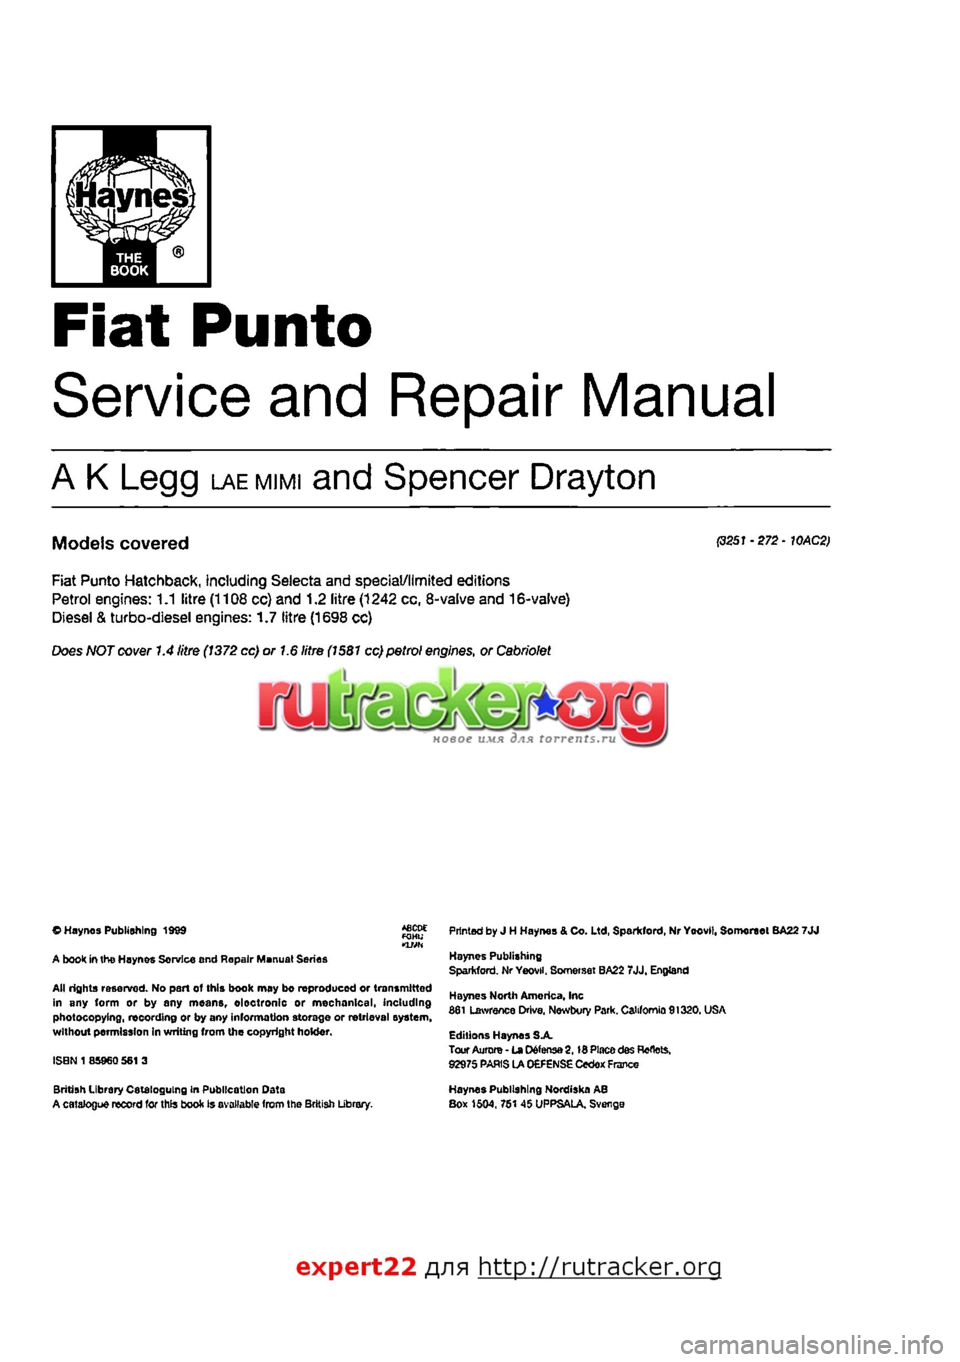 engine fiat punto 1997 176 / 1.g workshop manual